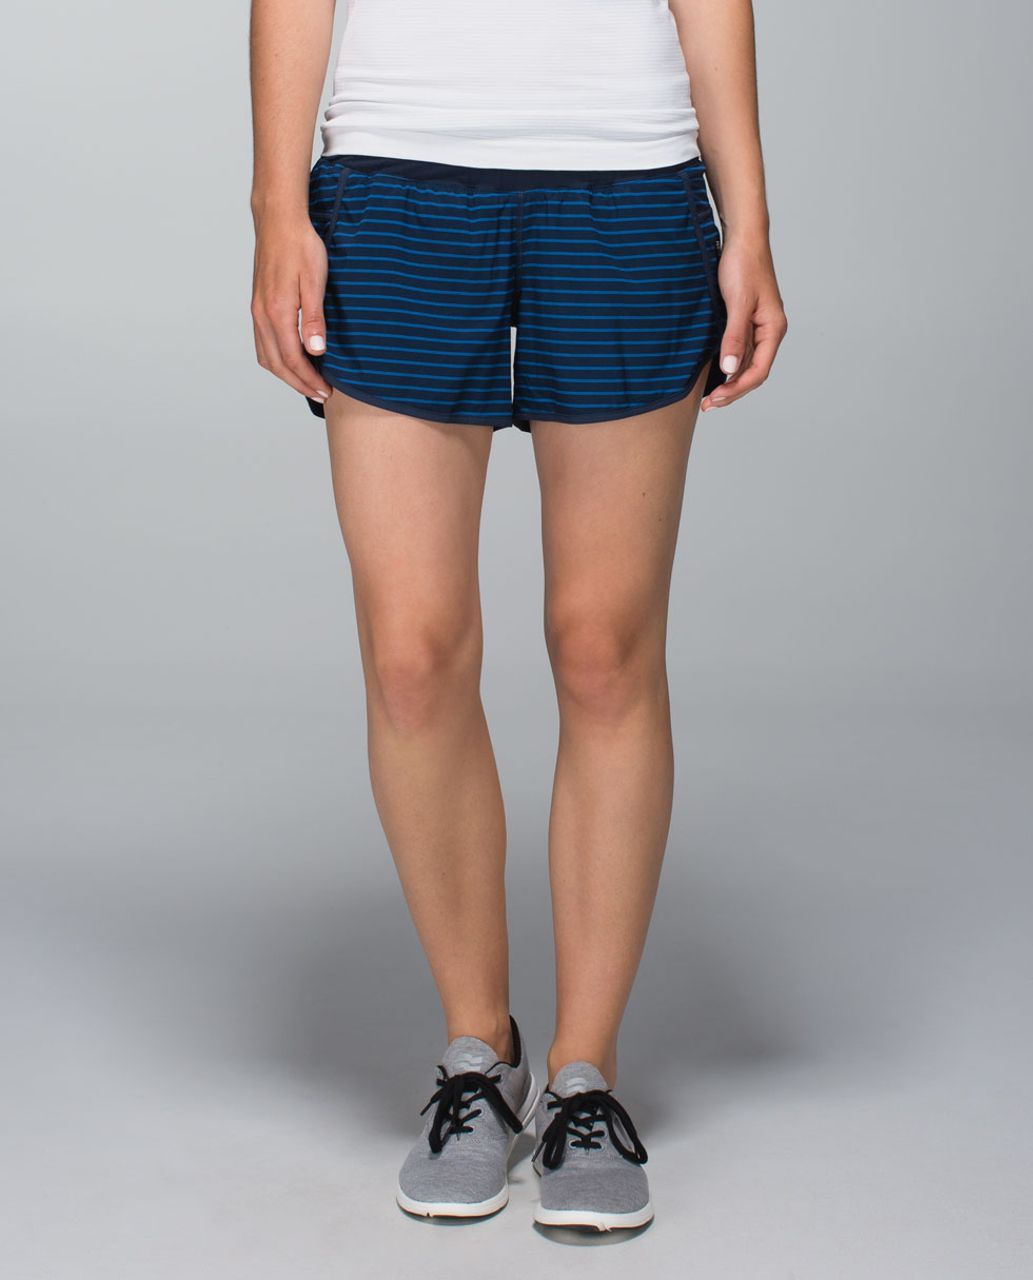 Lululemon Tracker Short II *4-way Stretch - West2east Stripe Printed Rugged Blue / Inkwell